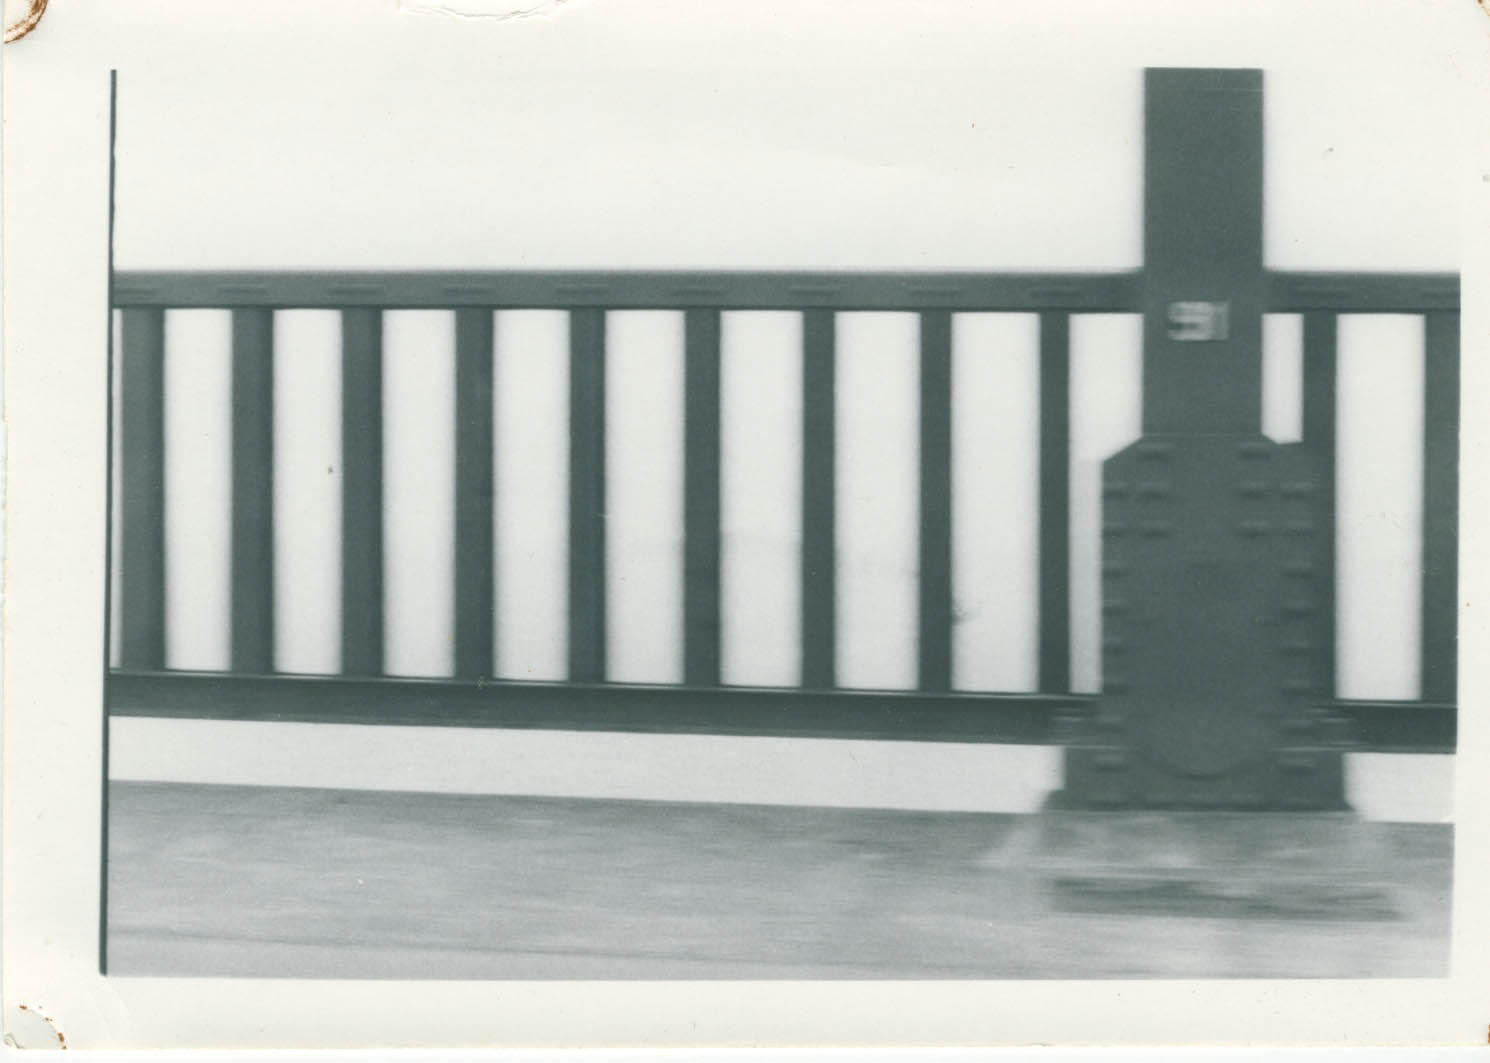 This photograph, of the Golden Gate Bridge, was taken by my parents sometime in 1976-1977.